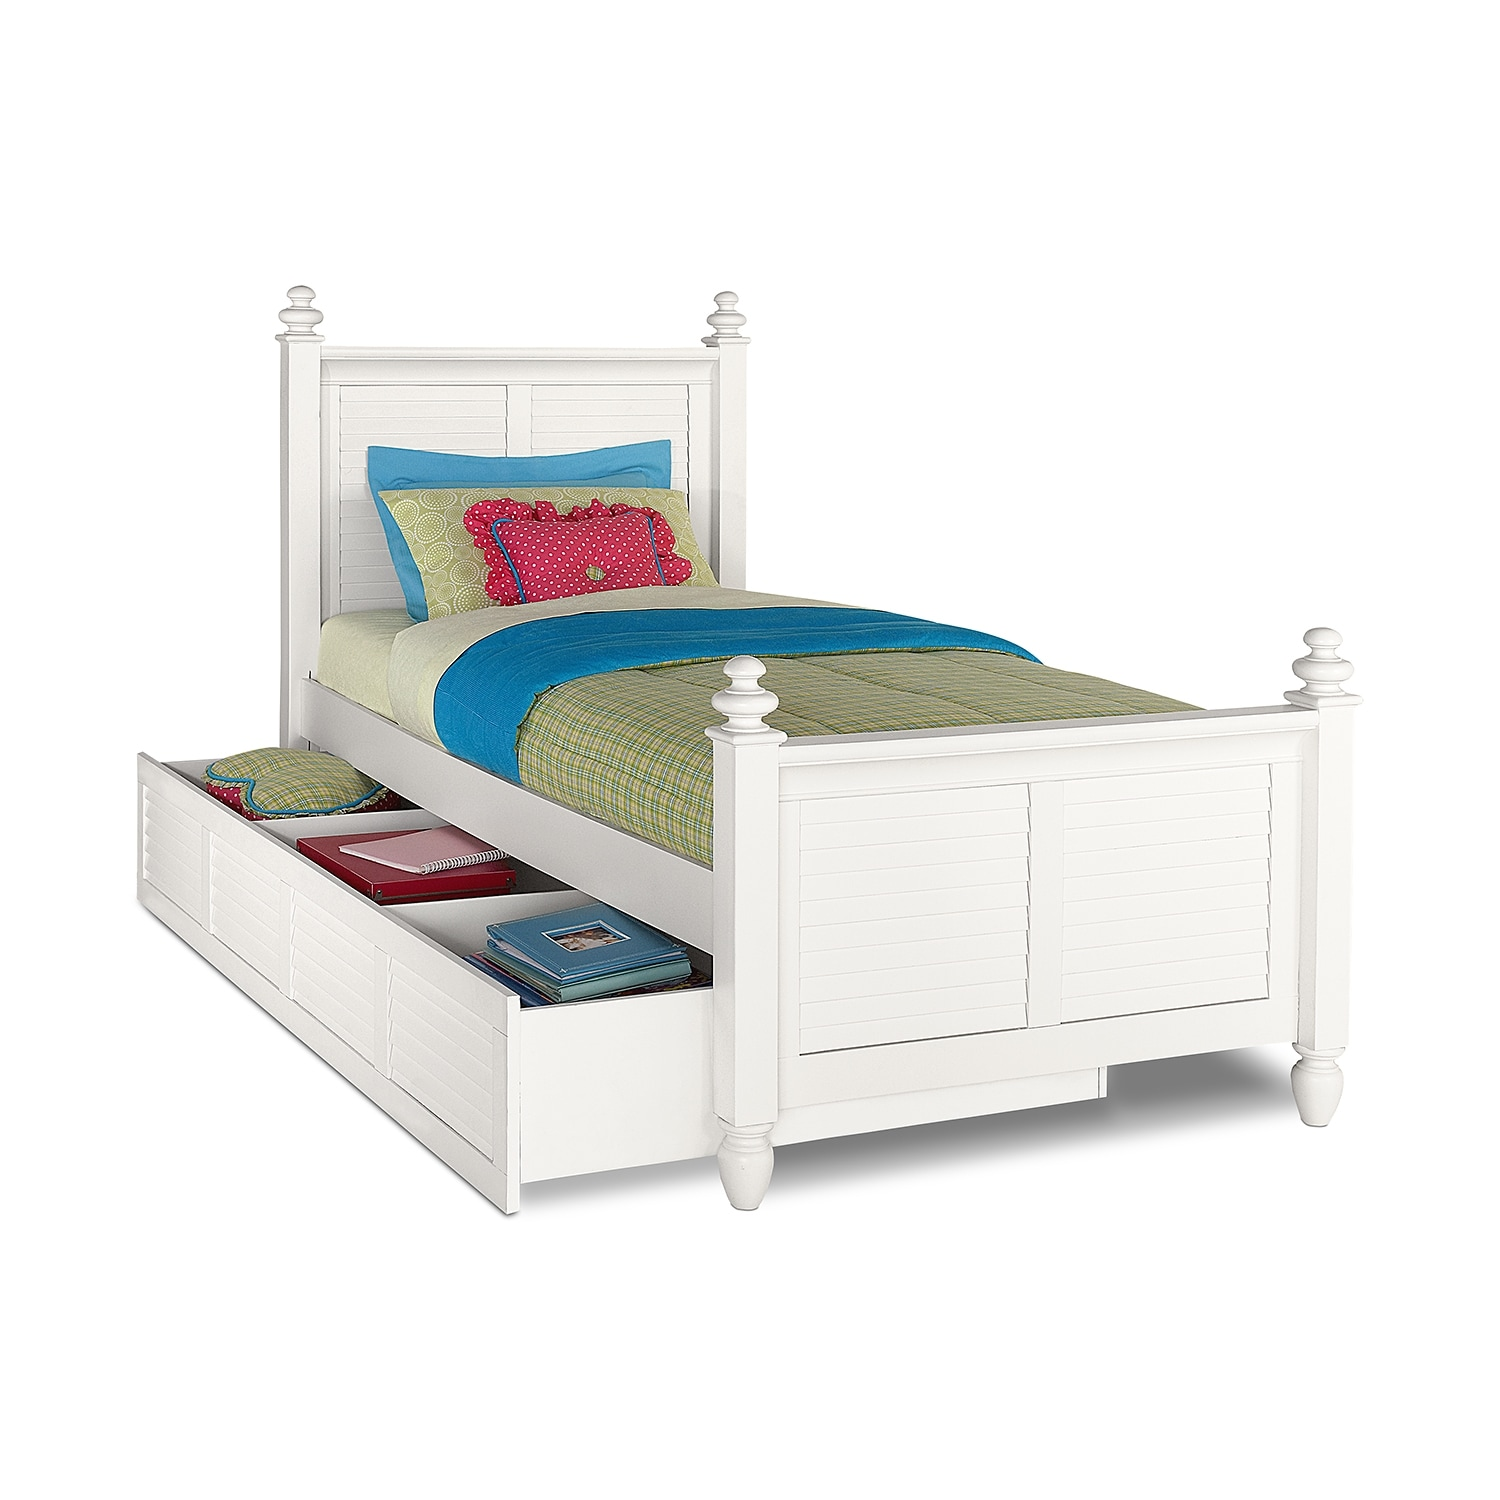 White twin bed with drawers - Seaside Twin Bed With Trundle White